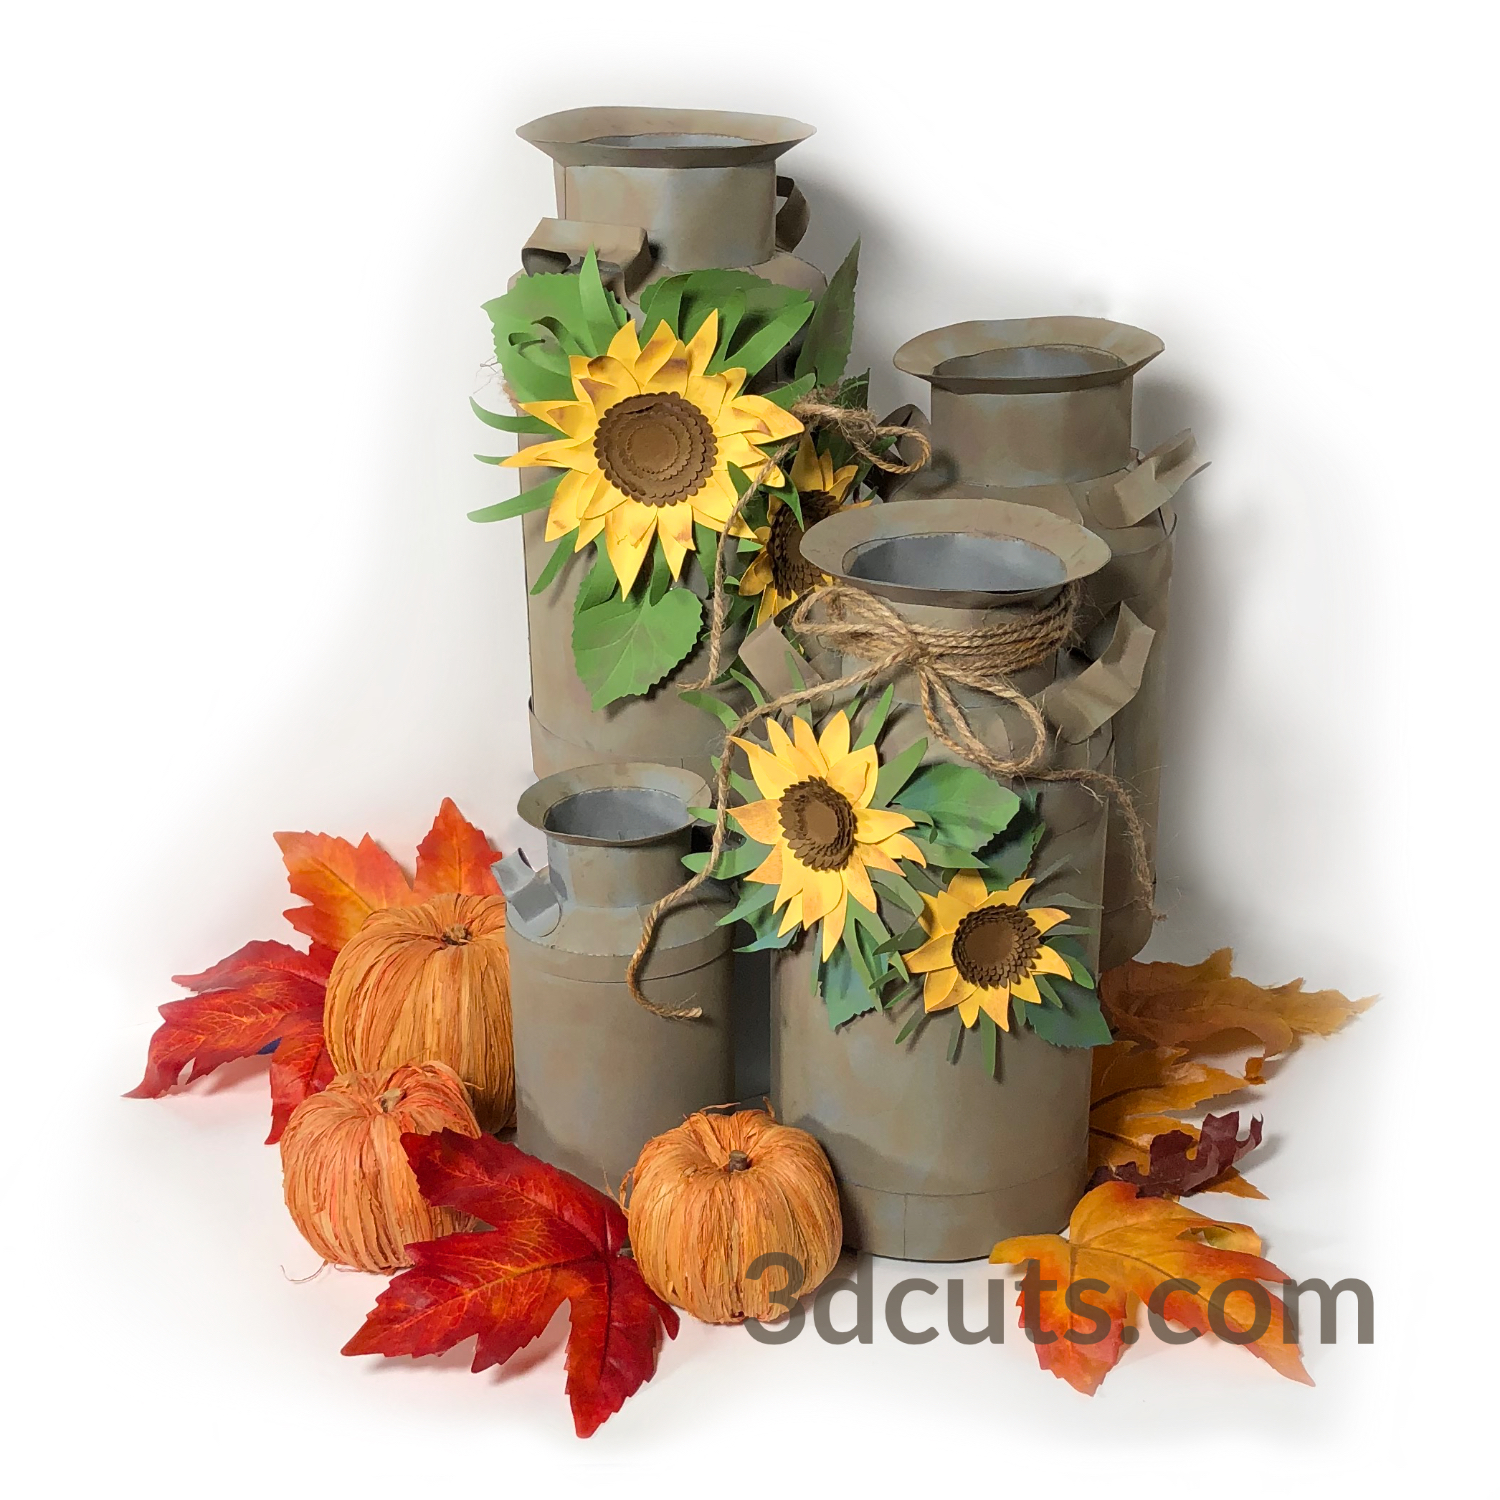 3D Milk Can with Sunflowers by 3dCuts.com, by Marji Roy, 3D cutting files in .svg, .dxf, png and .pdf formats for use with Silhouette, Cricut and Brother cutting machines, paper crafting files, SVG Files